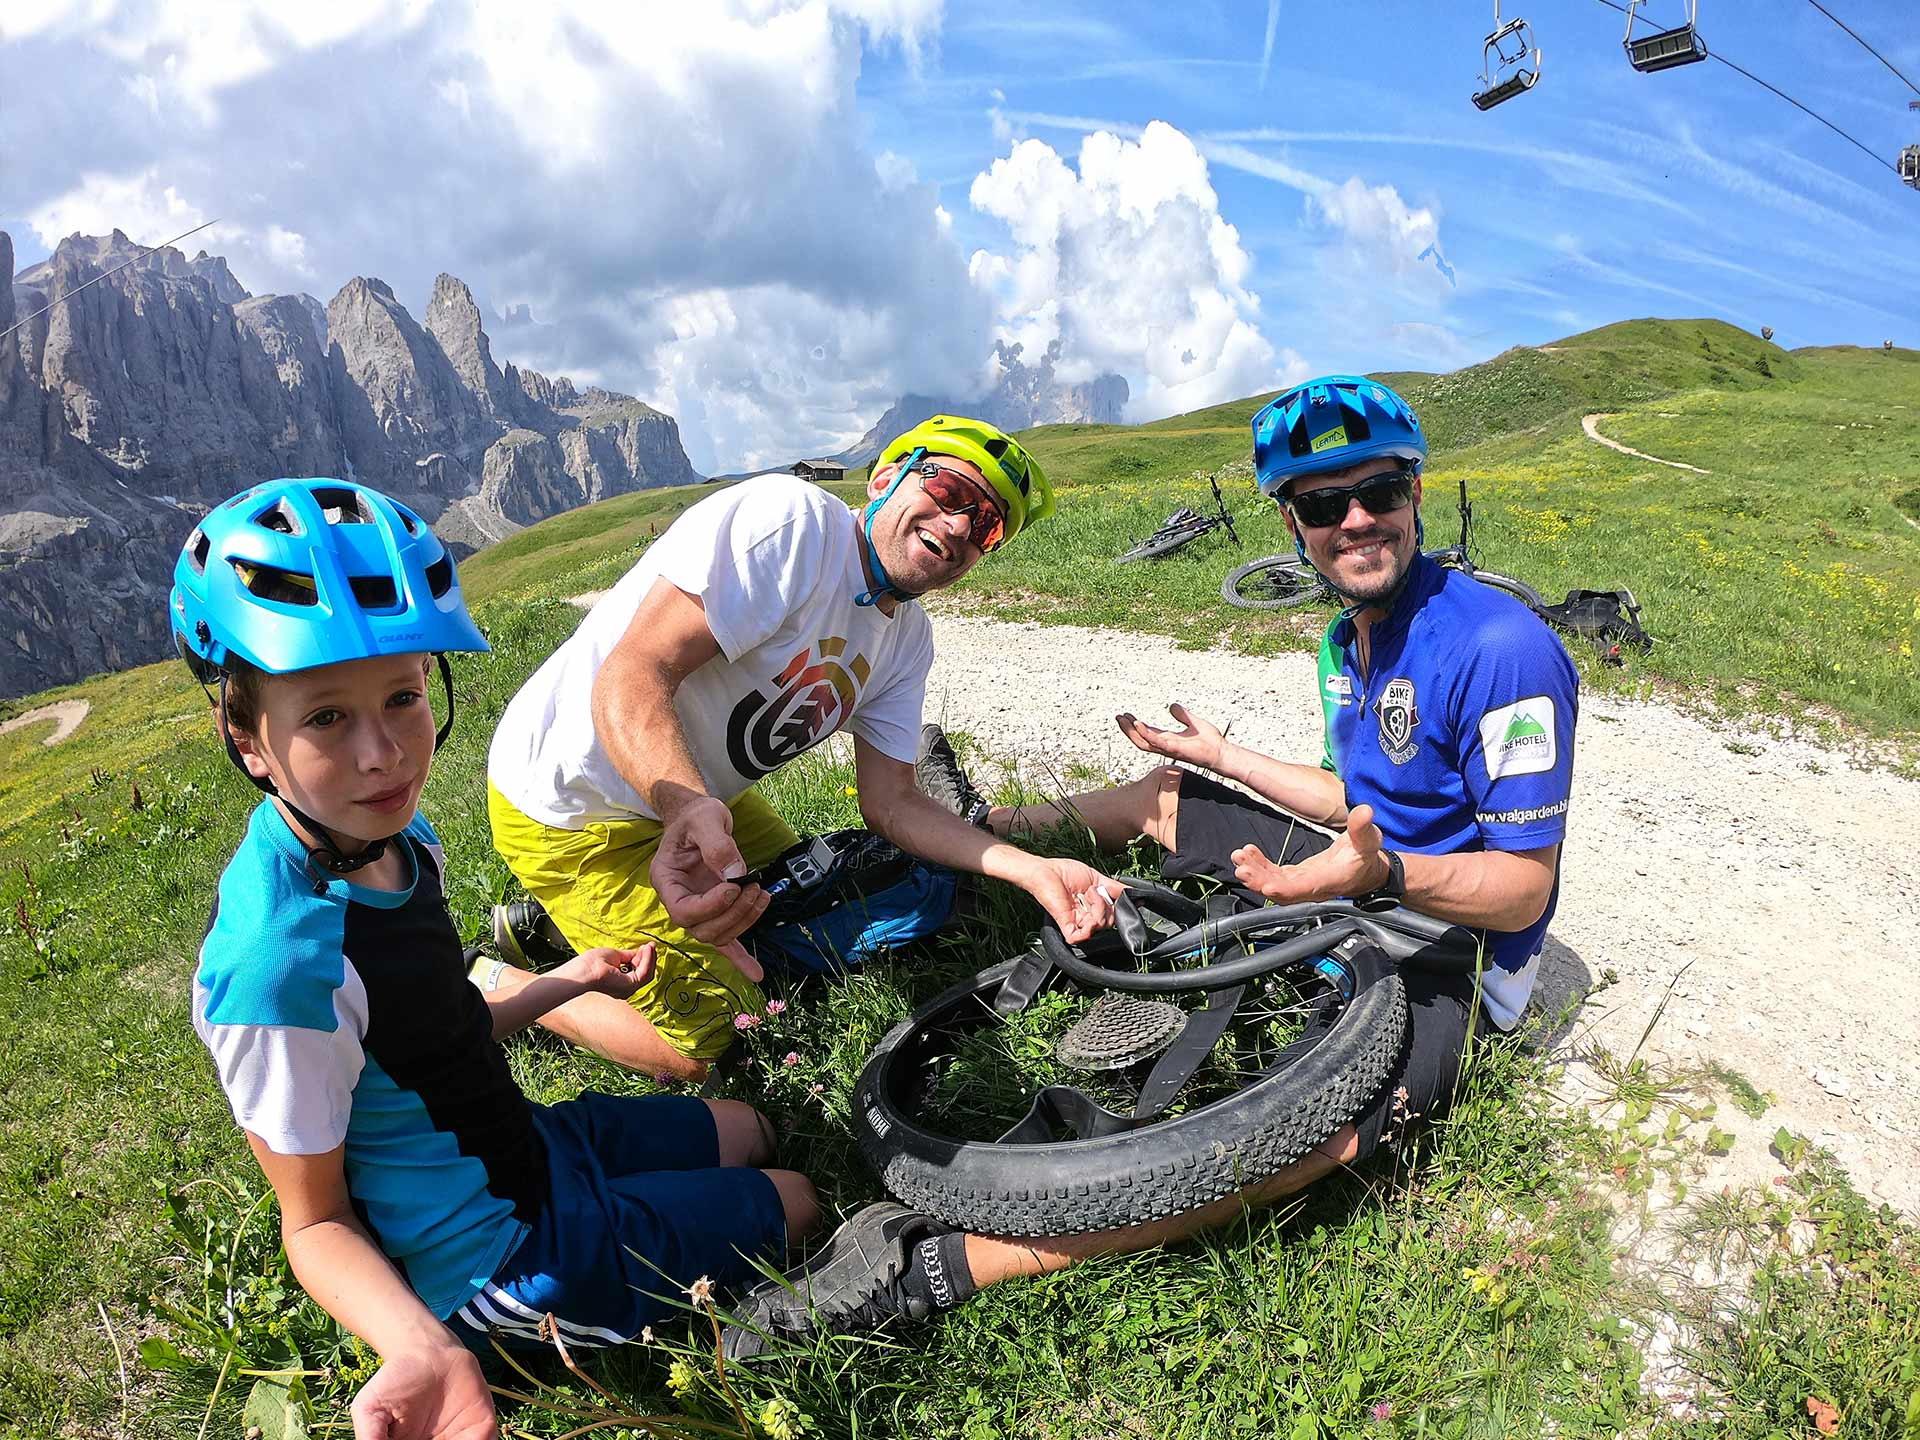 riparazione Bici on tour - mob trail in val gardena